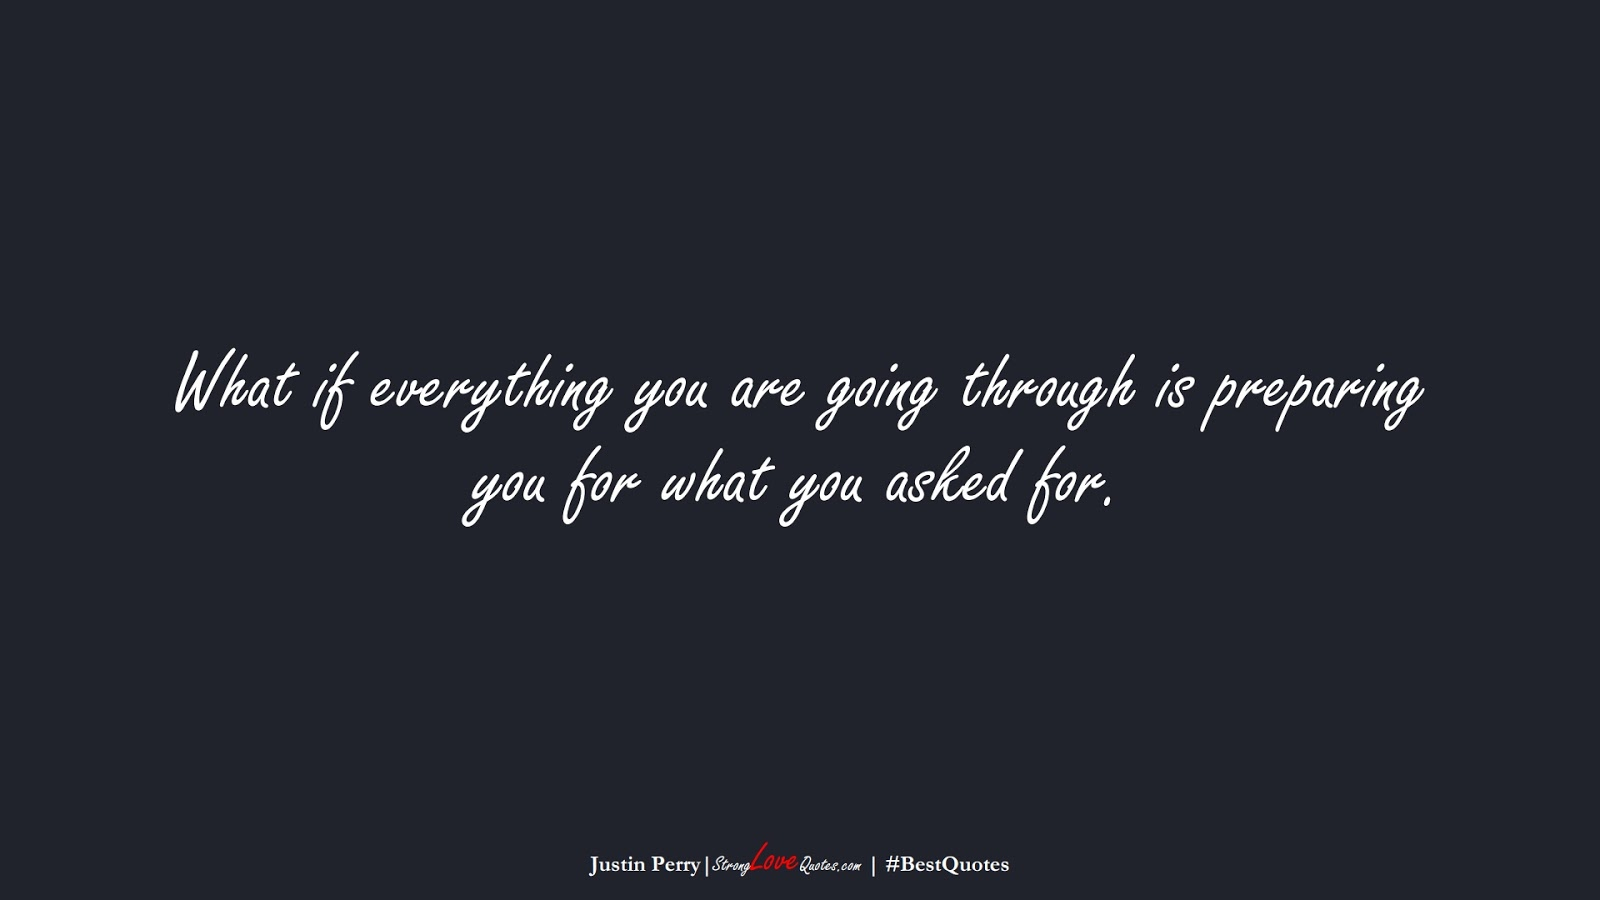 What if everything you are going through is preparing you for what you asked for. (Justin Perry);  #BestQuotes